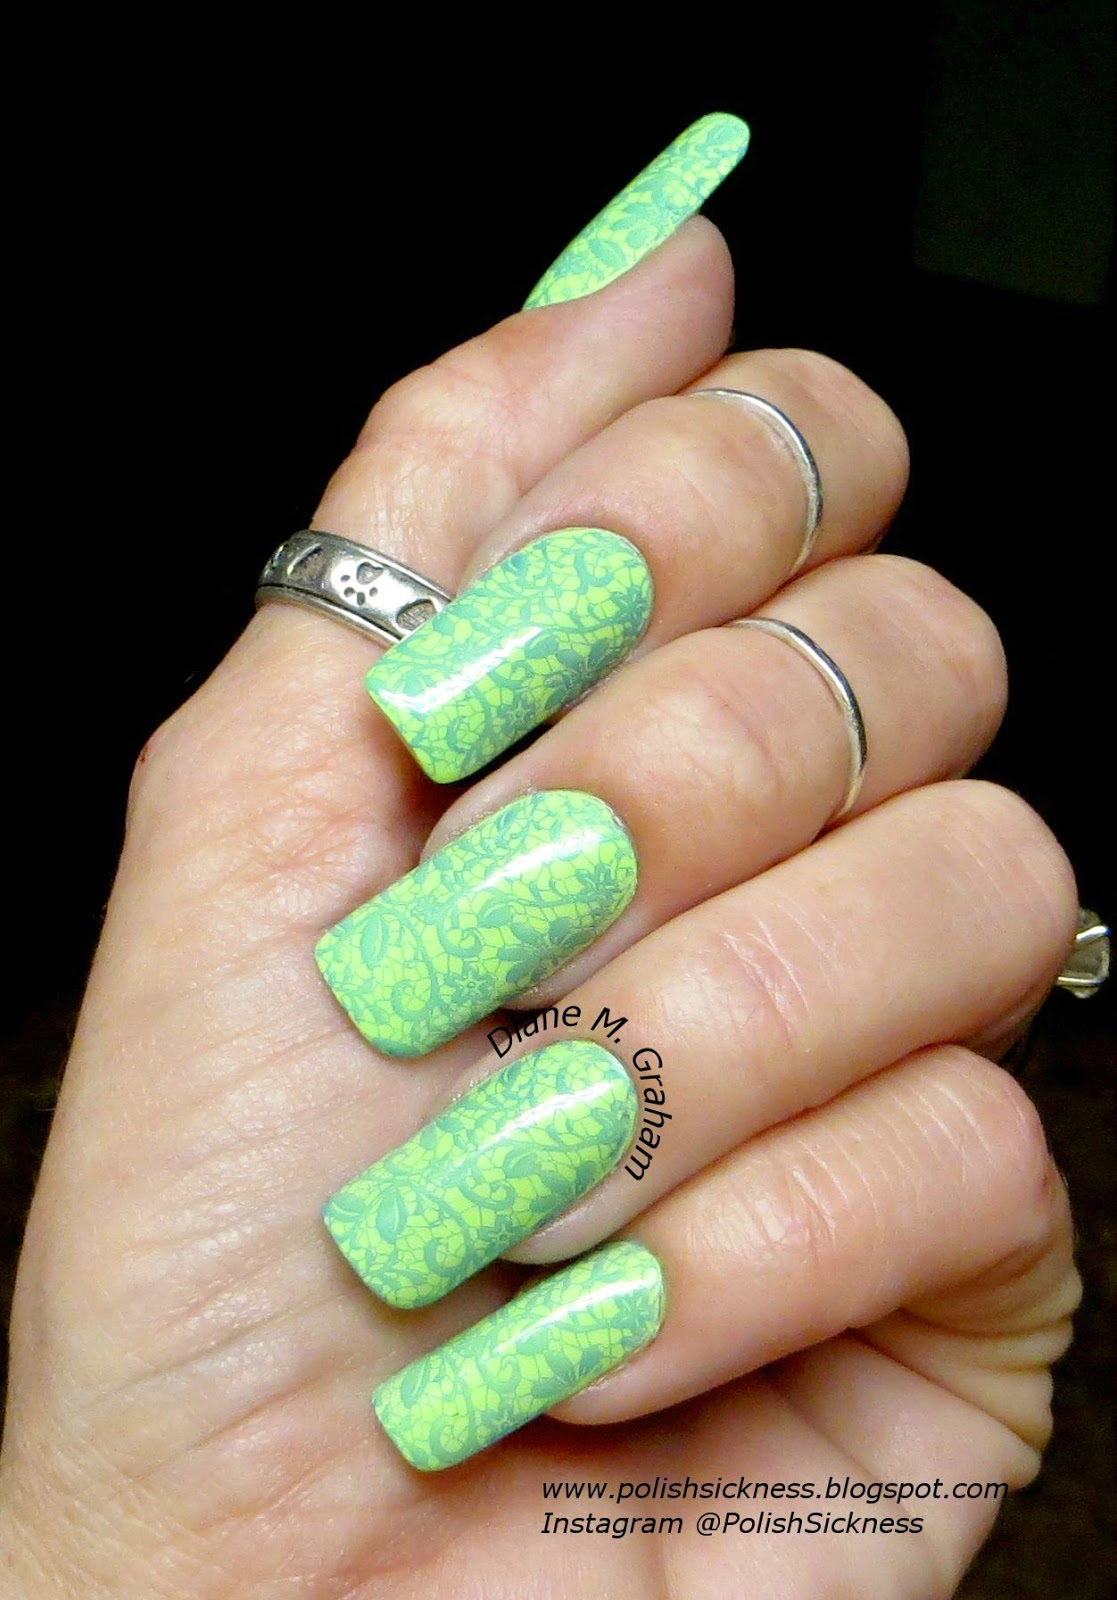 China Glaze Grass is Lime Greener, Sinful Colors Endless Blue, Ali Express AP 20 stamp